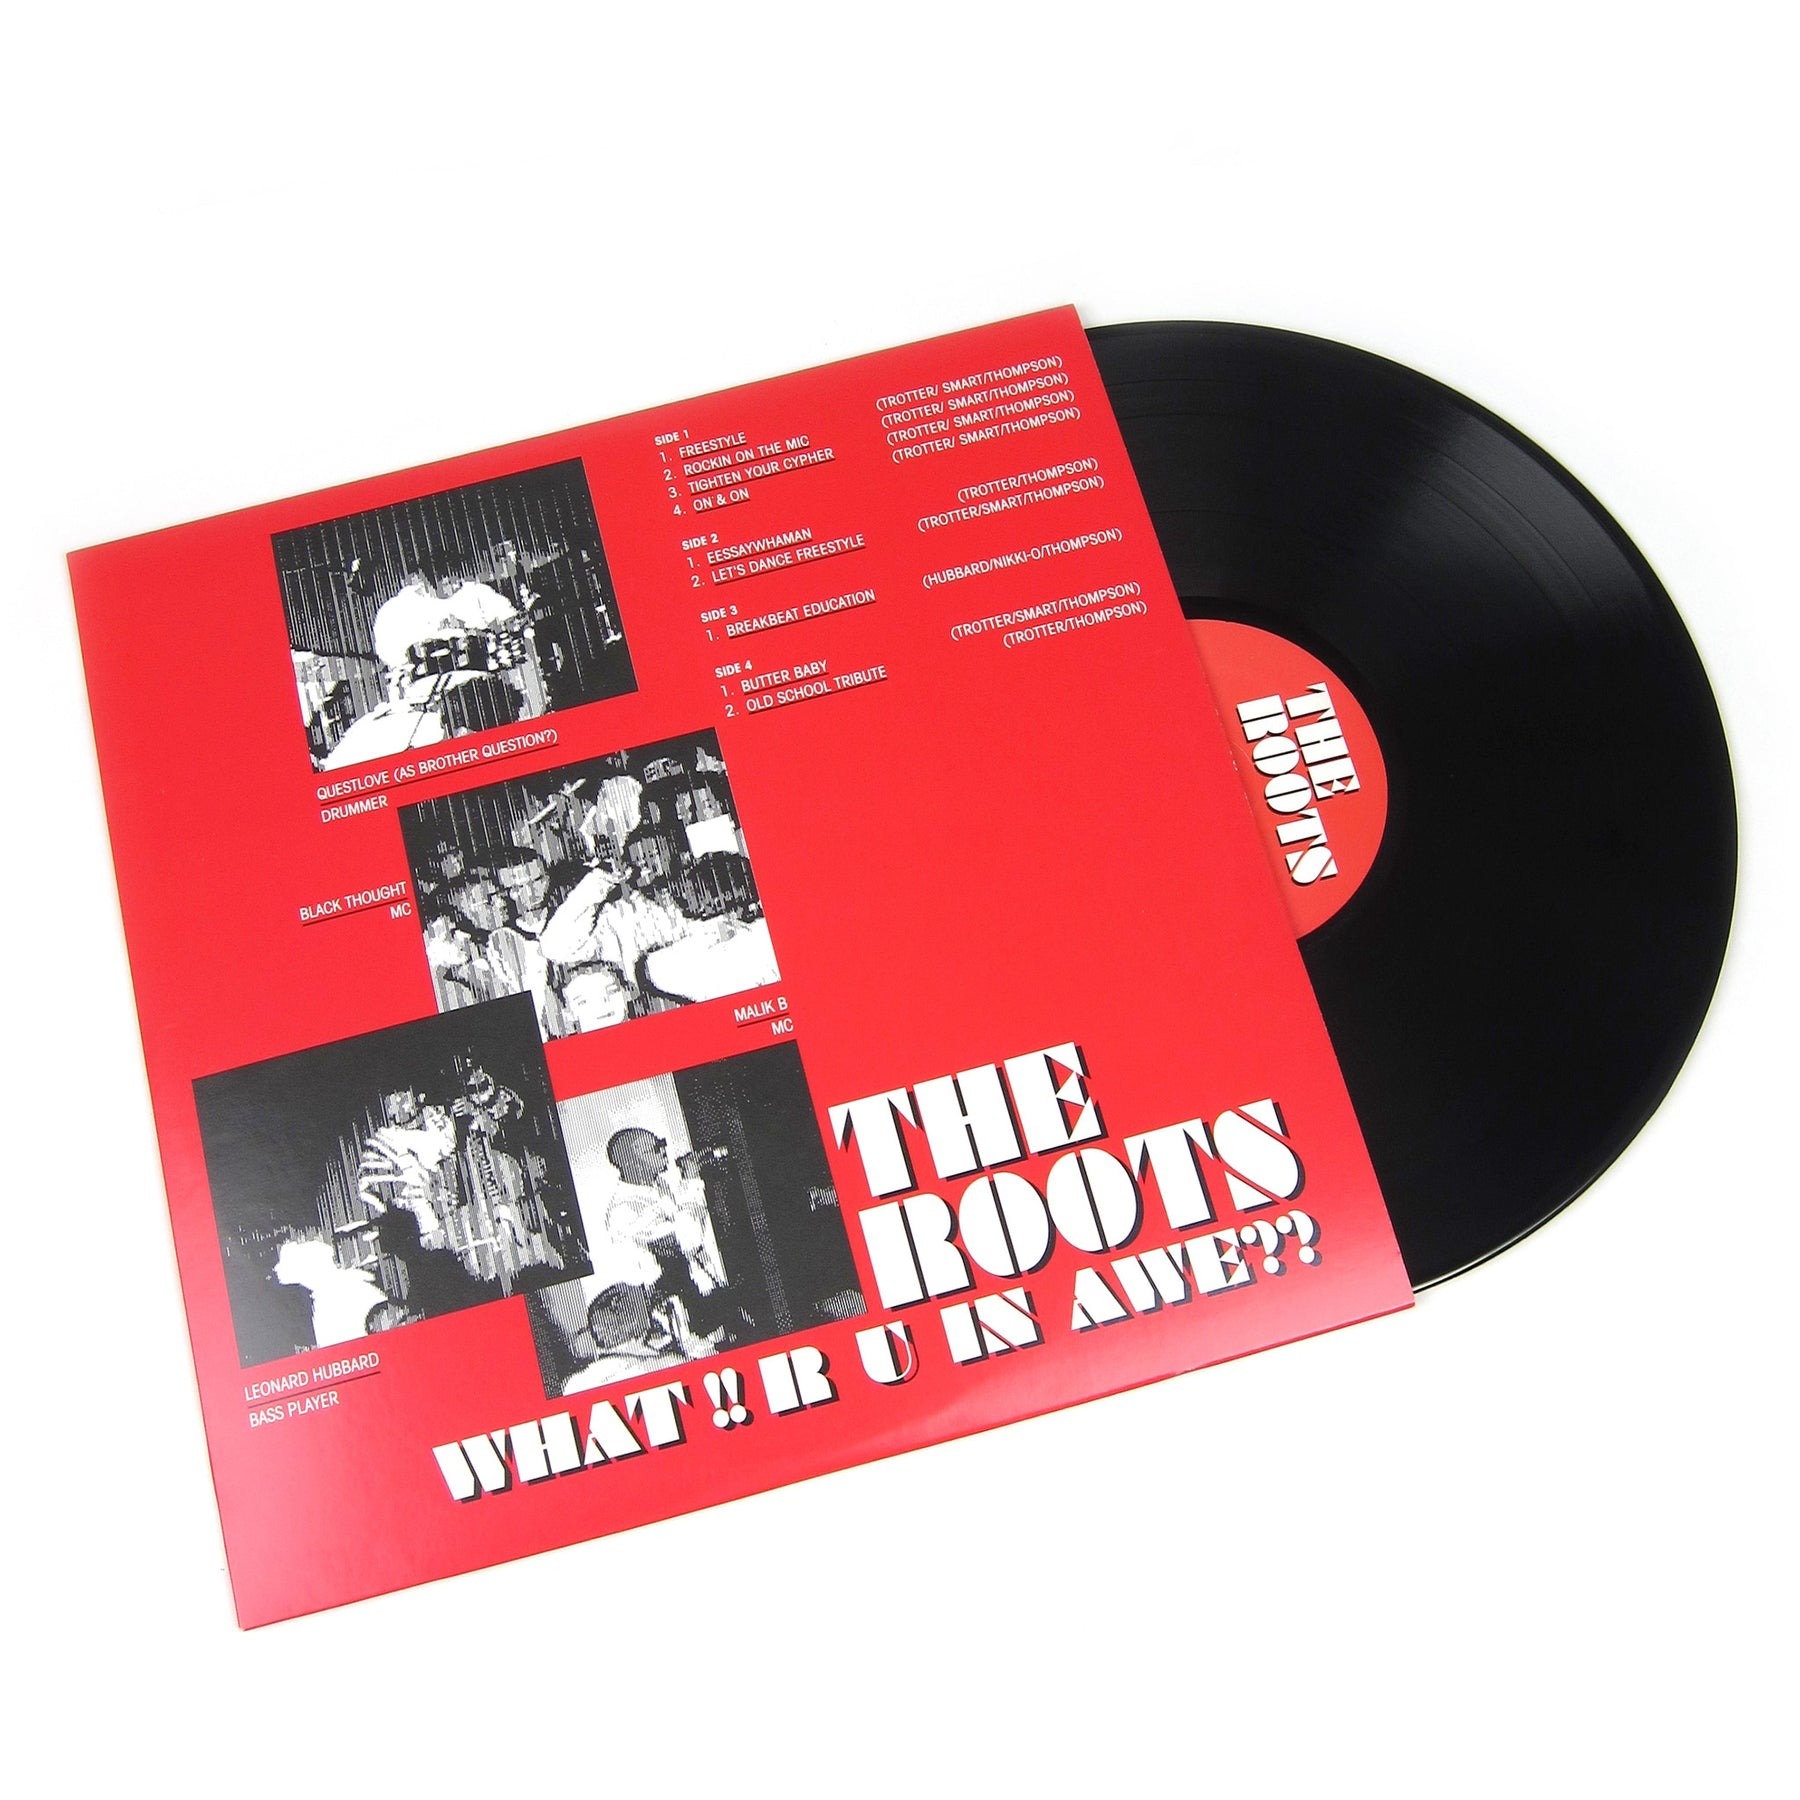 The Roots What R U In Awe Live 1992 Vinyl 2lp